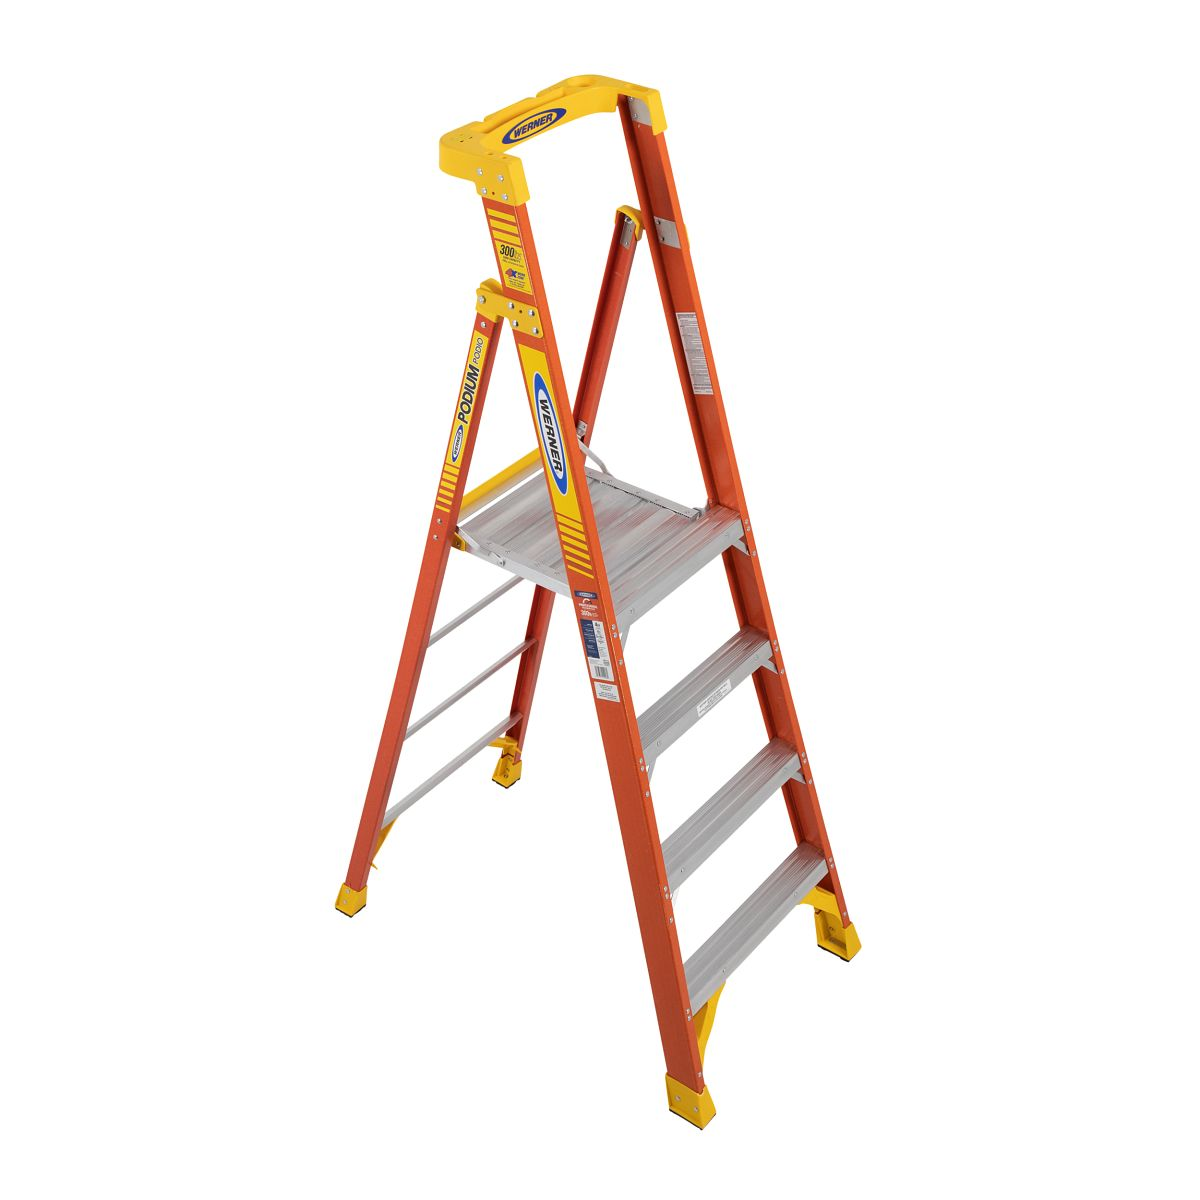 Groovy Pd6204Ca Step Ladders Werner Ca Beatyapartments Chair Design Images Beatyapartmentscom